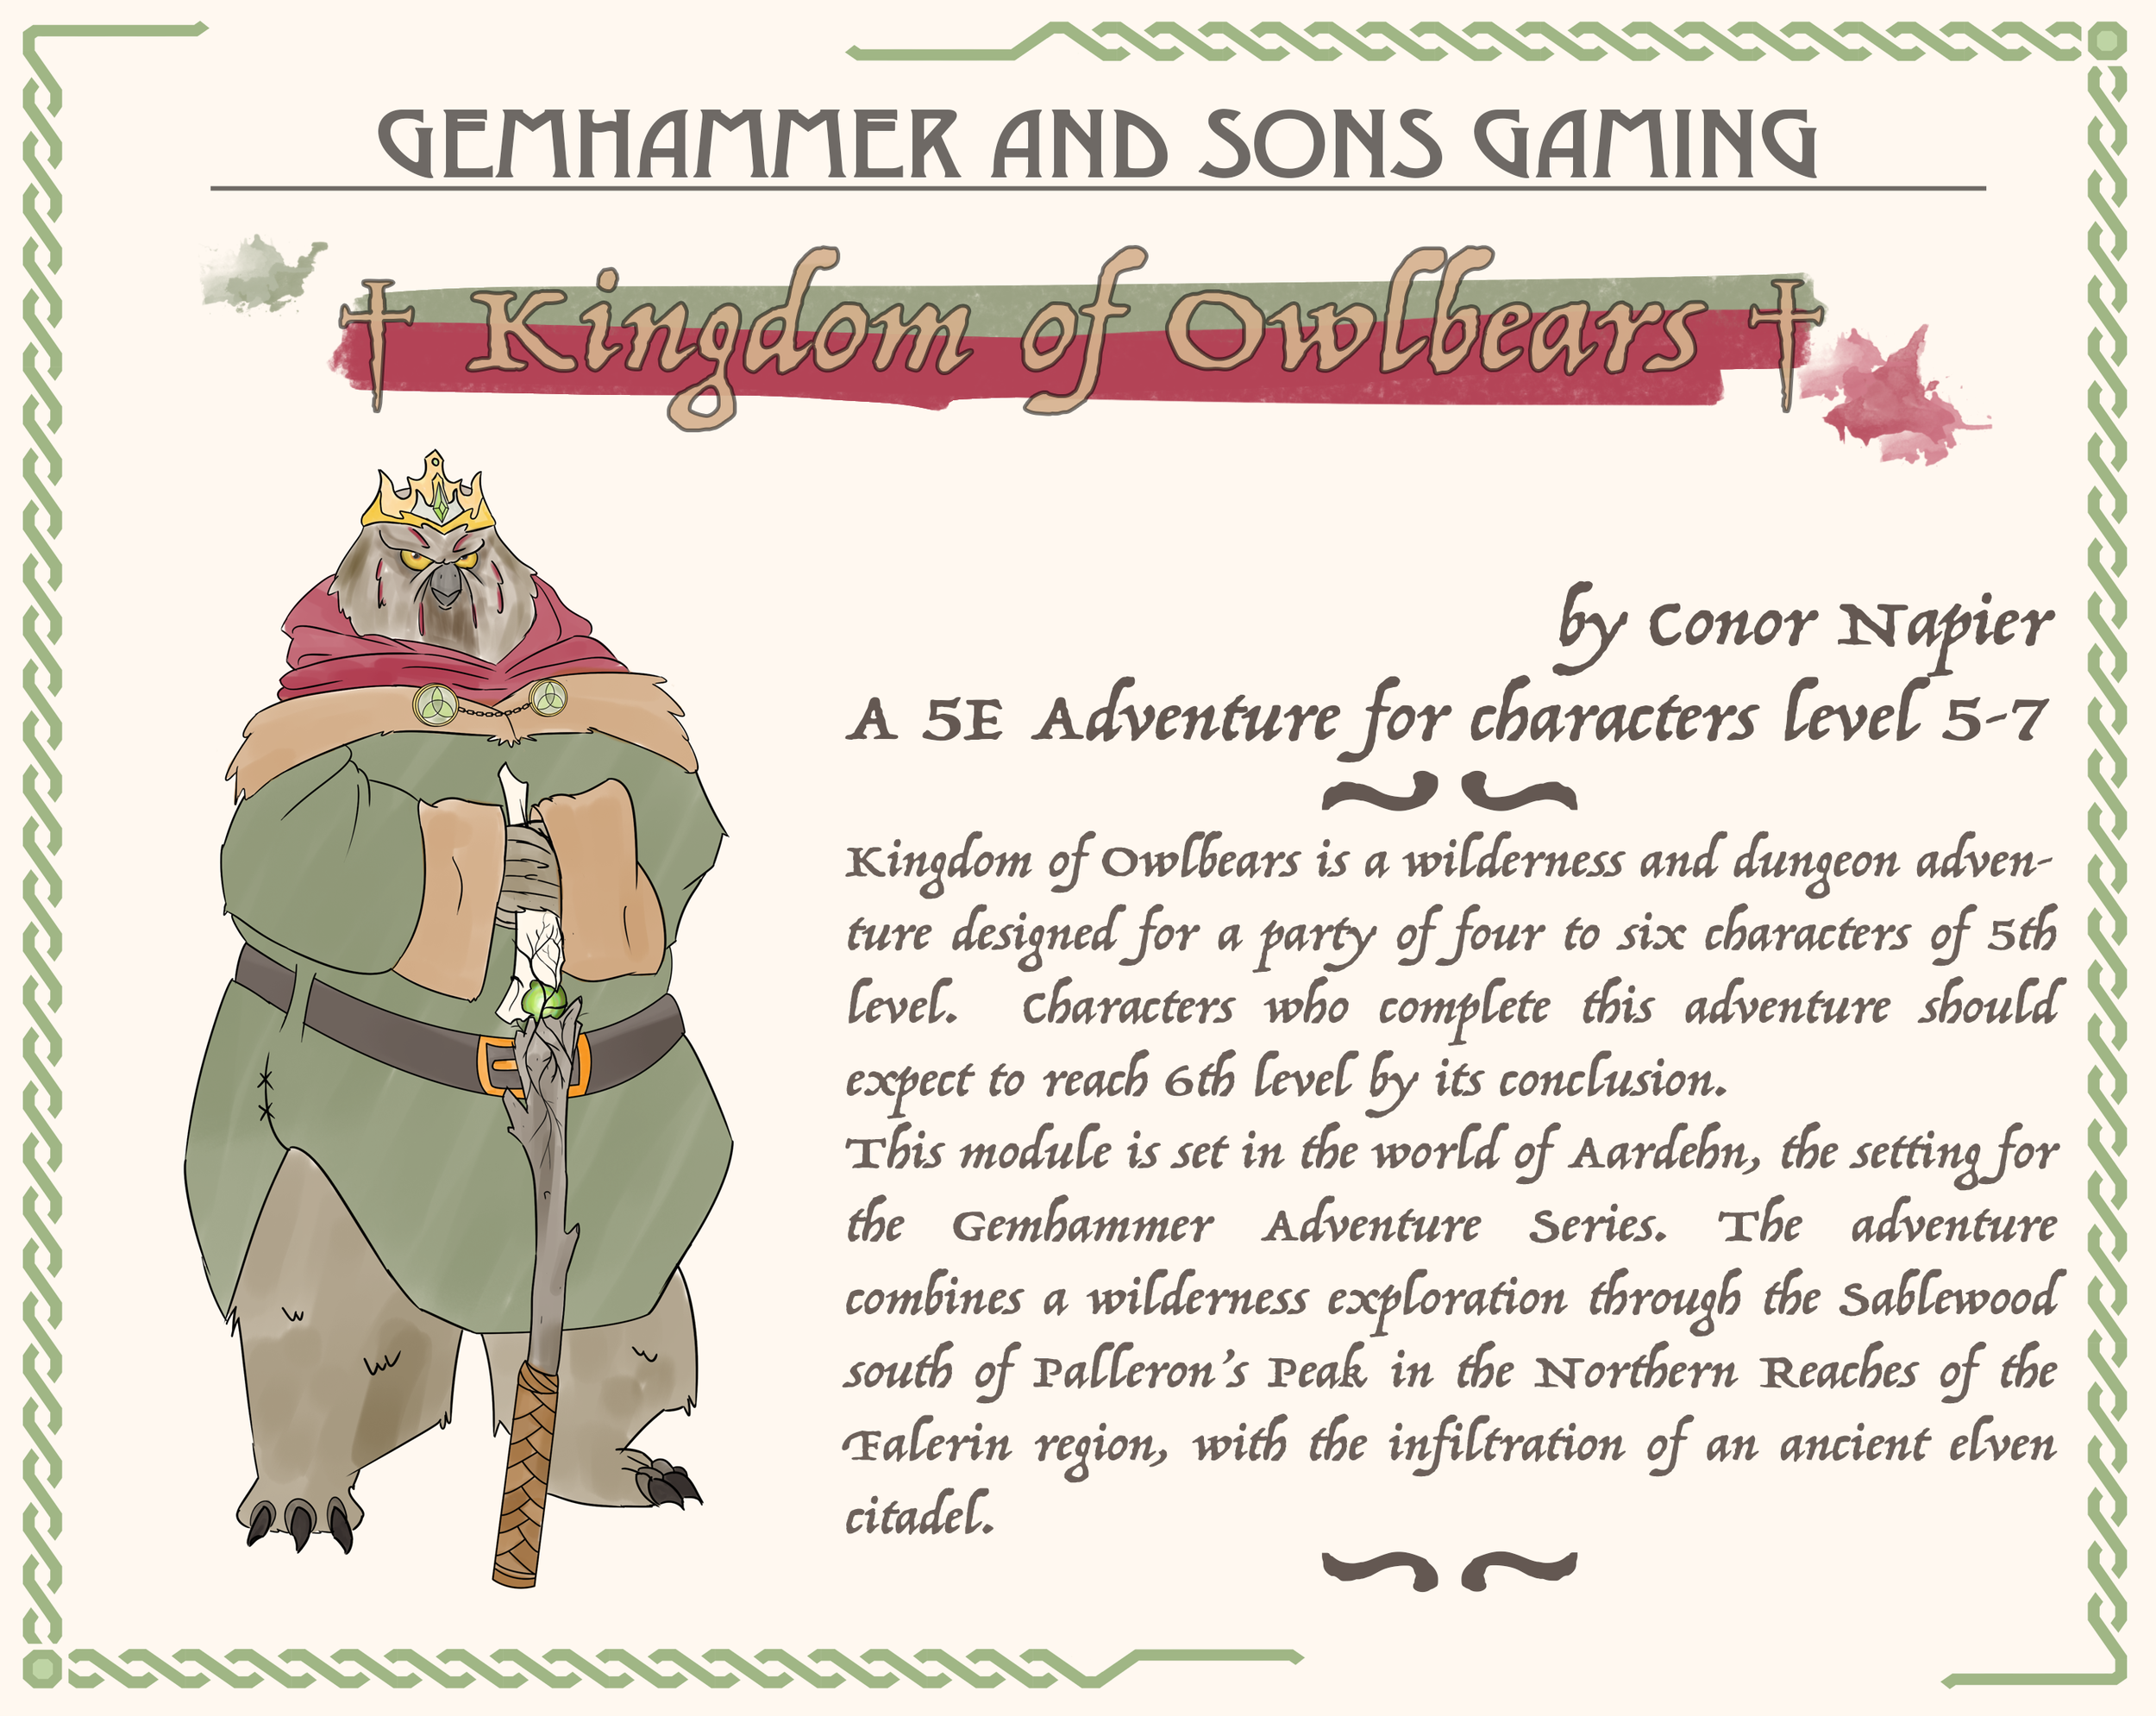 Kingdom of Olwbears - Free to the backers of our Compendium of Wild Beast Kickstarter, this 32 page adventure will be the first entry in our Gemhammer Adventure Series, and introduce you to the land of Falerin in the World of Aardehn. Filled with secrets, magic items, some new critters, and an Owlbear Wizard,